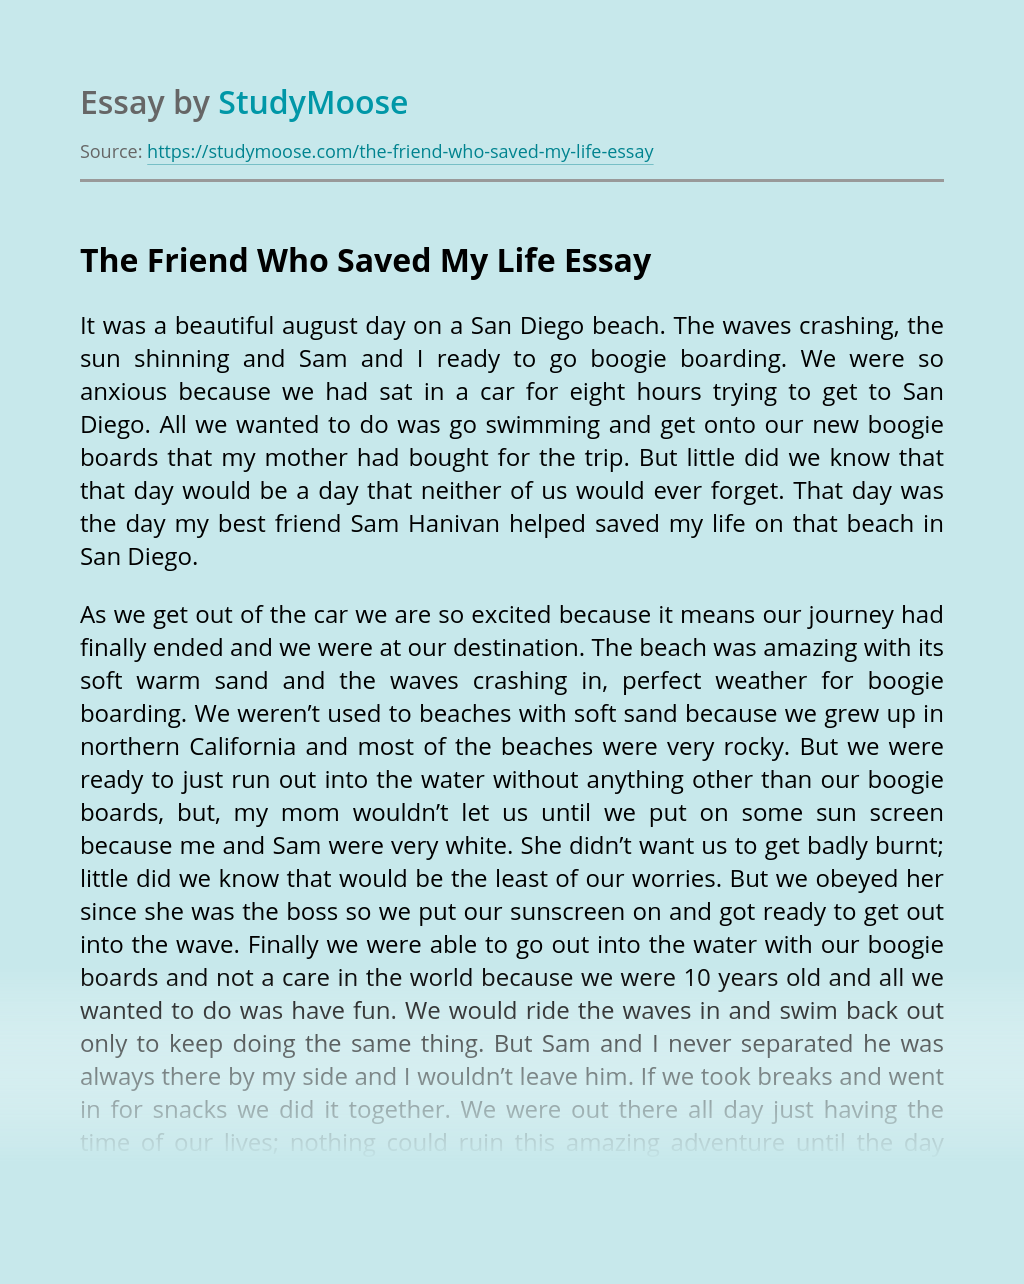 The Friend Who Saved My Life